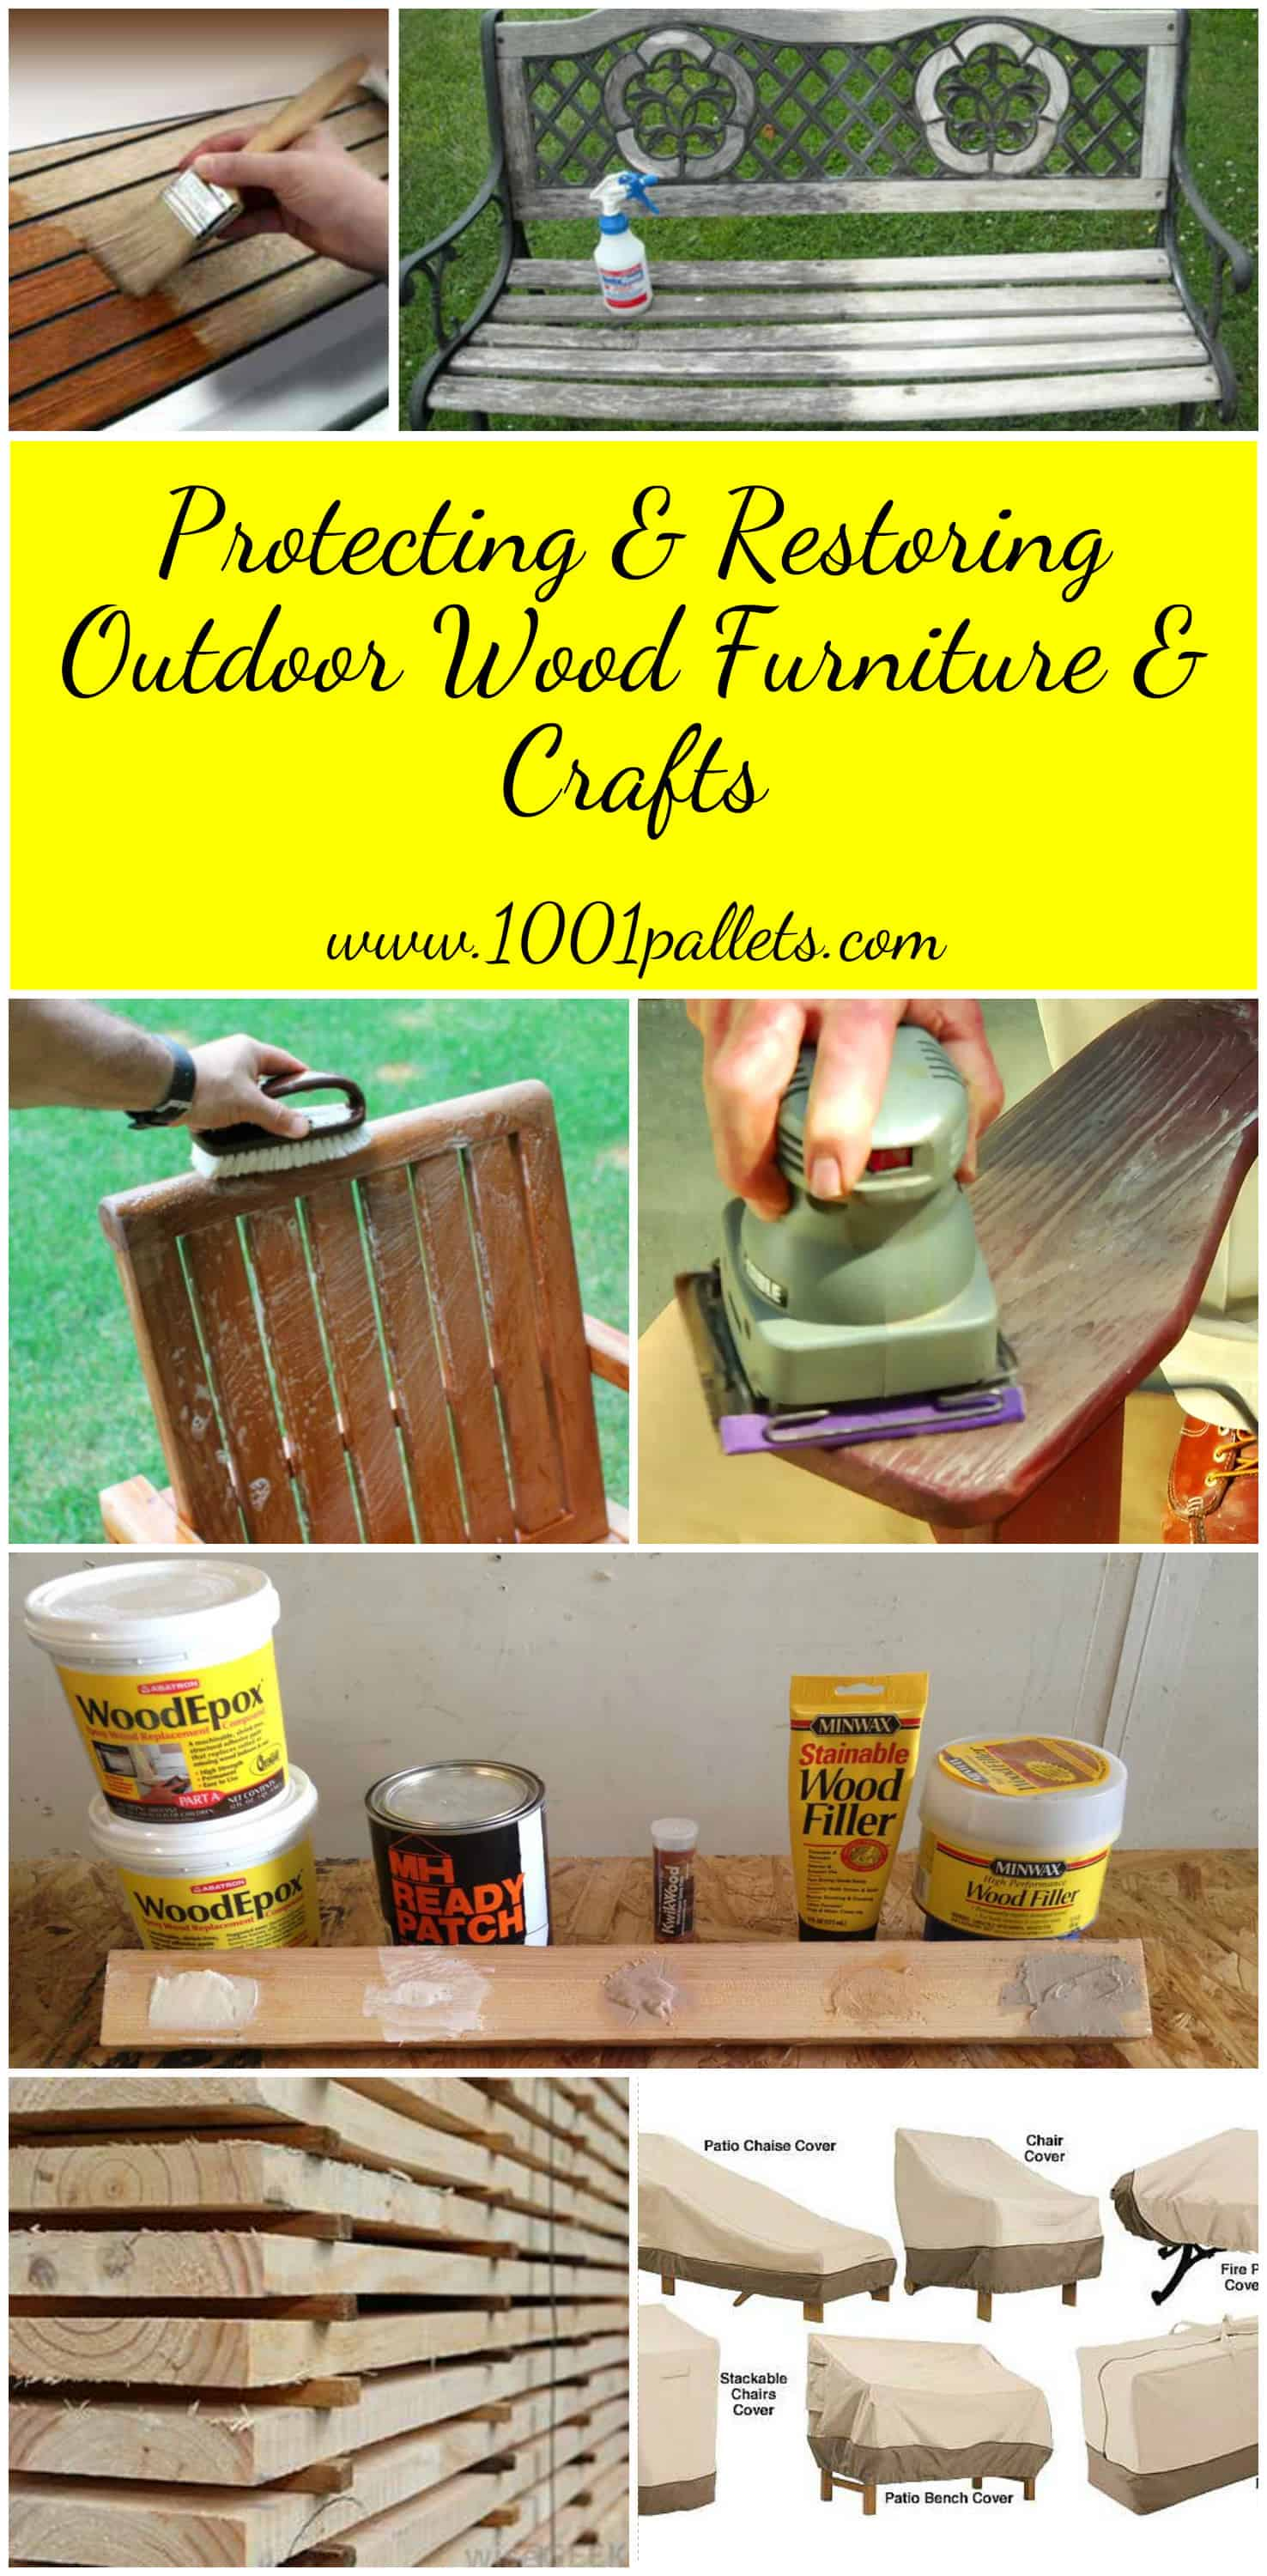 - Protecting & Restoring Outdoor Wood Furniture & Crafts • 1001 Pallets